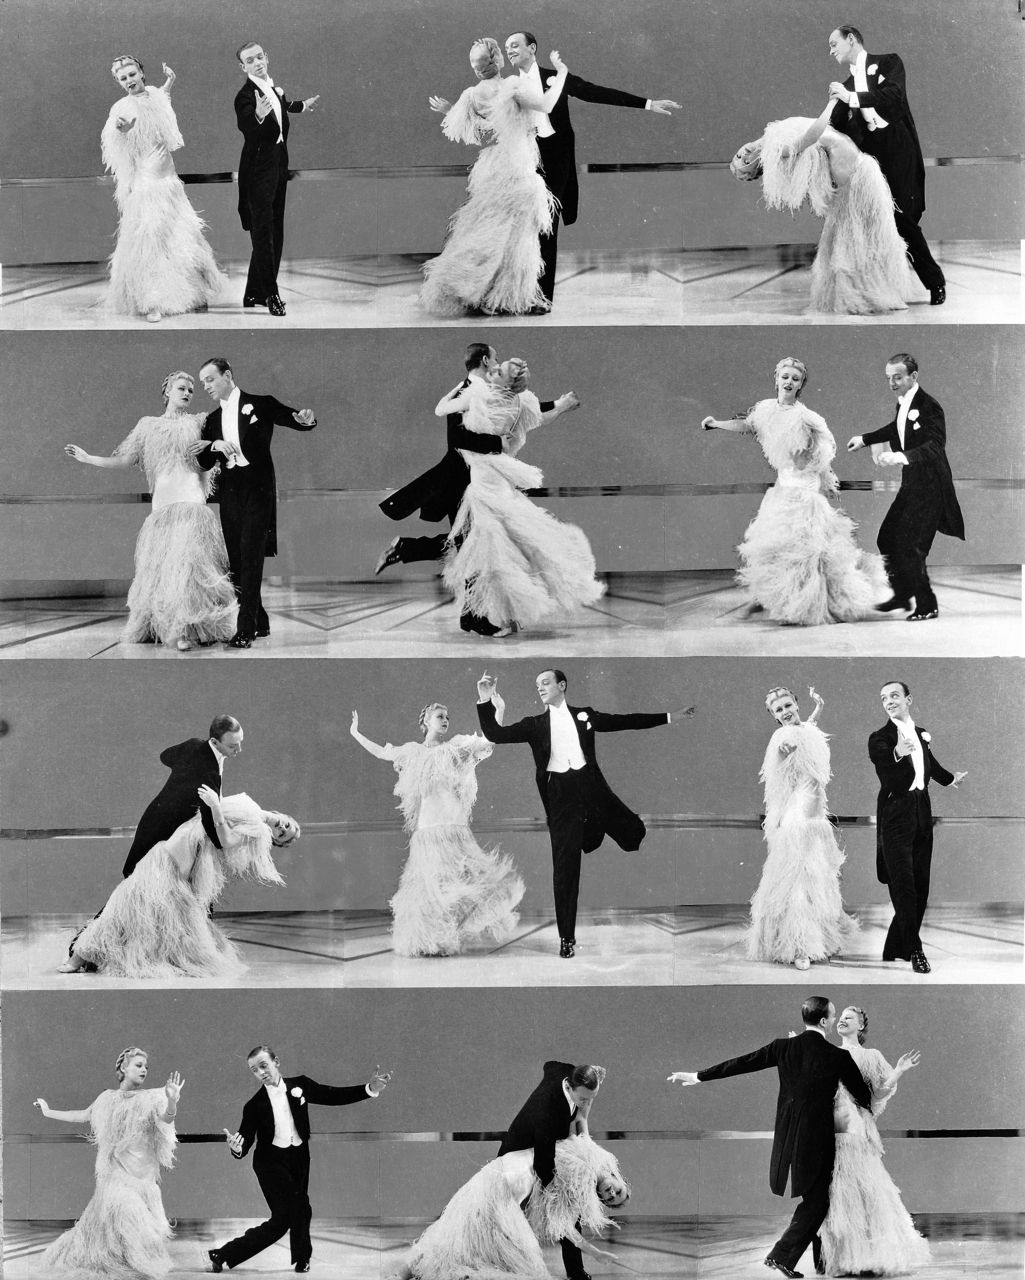 Ginger Rogers Fred Astaire Dancing Cheek To Cheek From 1935 S Top Hat Via Retrochic Oh Man This Dress Fred And Ginger Ginger Rogers Fred Astaire